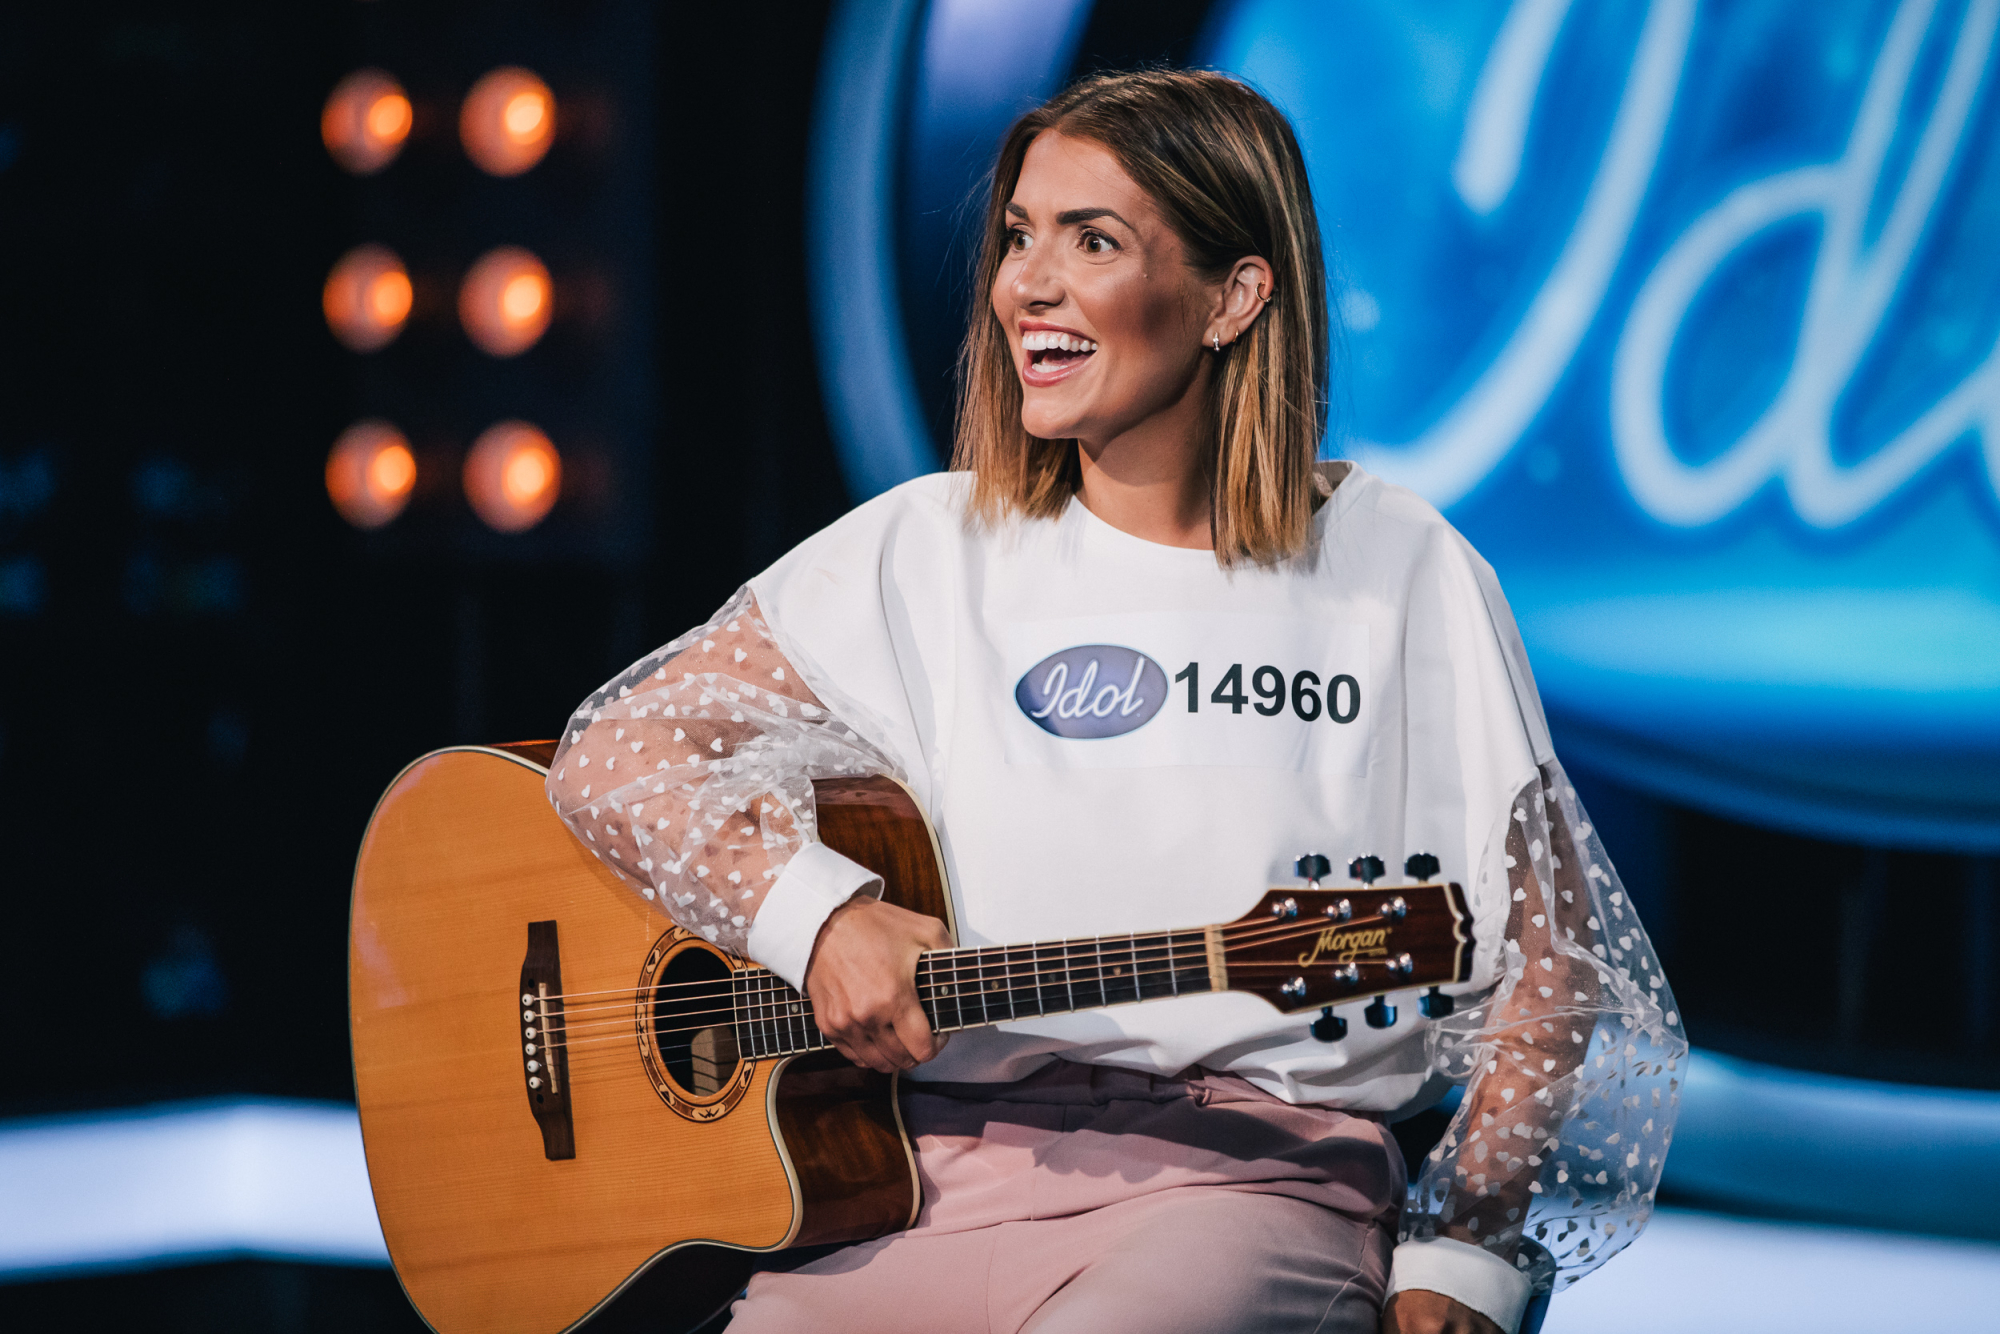 Idol 2018 - audition i Oslo - deltaker nr. 14960, Iselin Guttormsen.